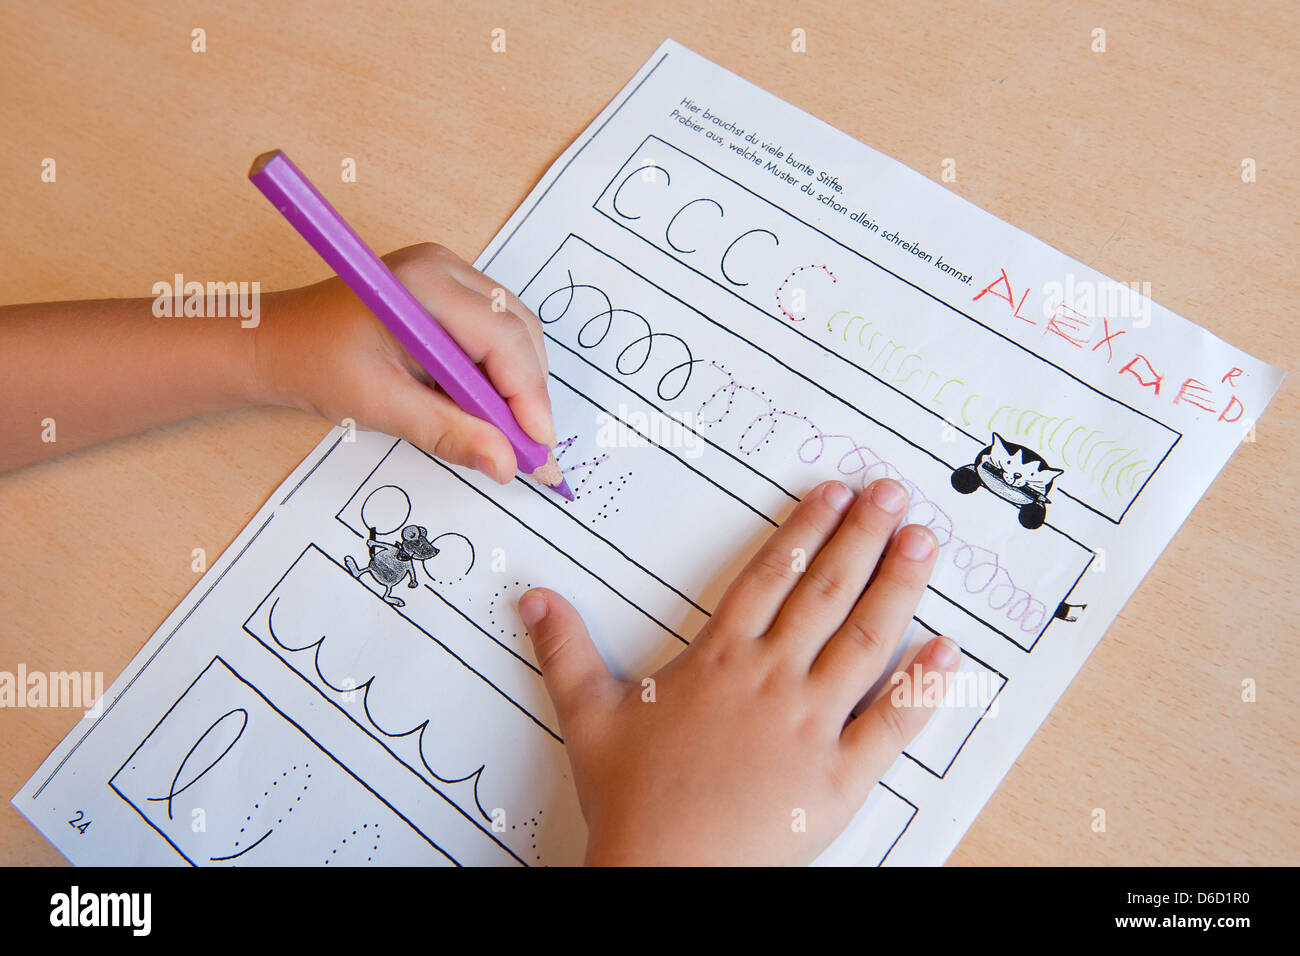 Berlin, Germany, a task list for preschool daycare - Stock Image